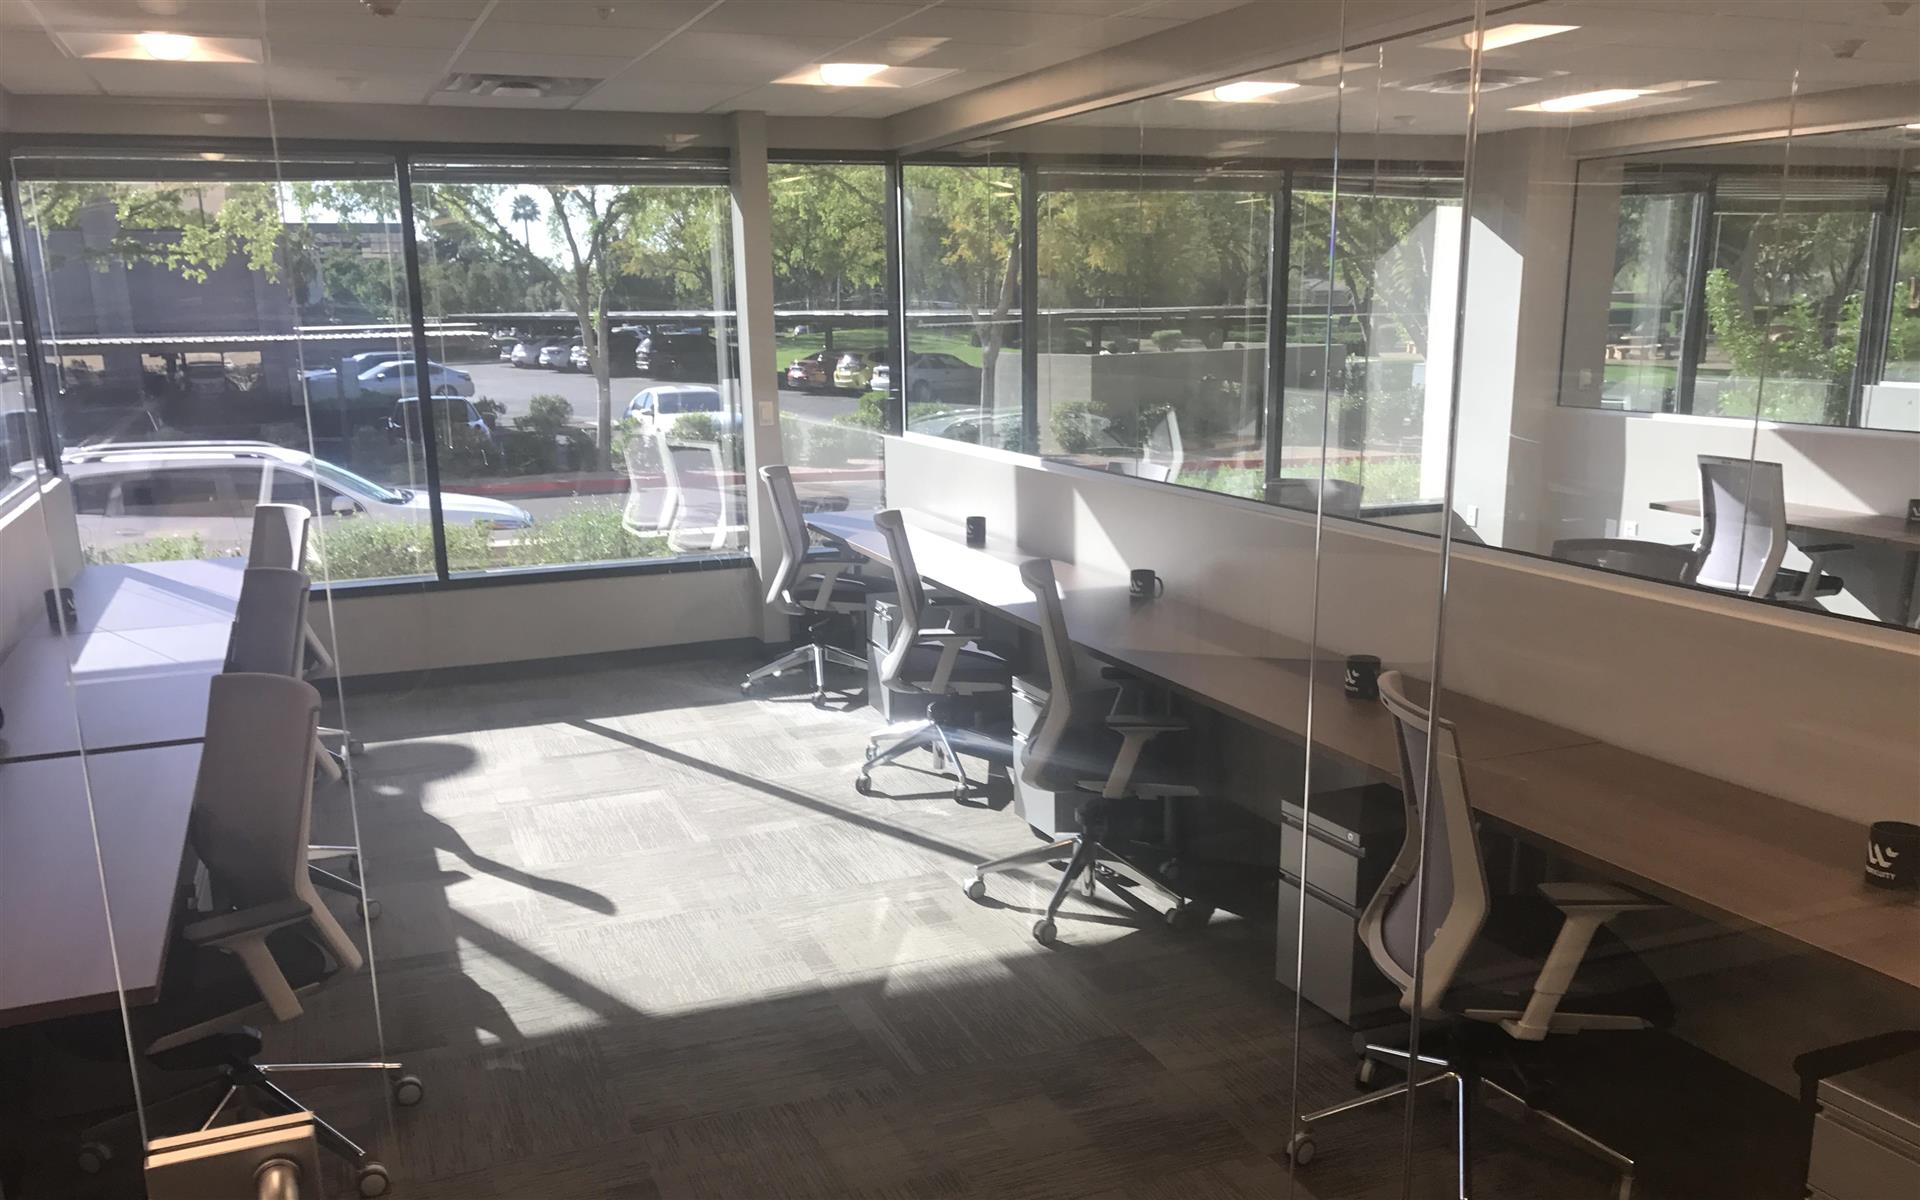 Workuity - Suite 102 - 7 Person Office